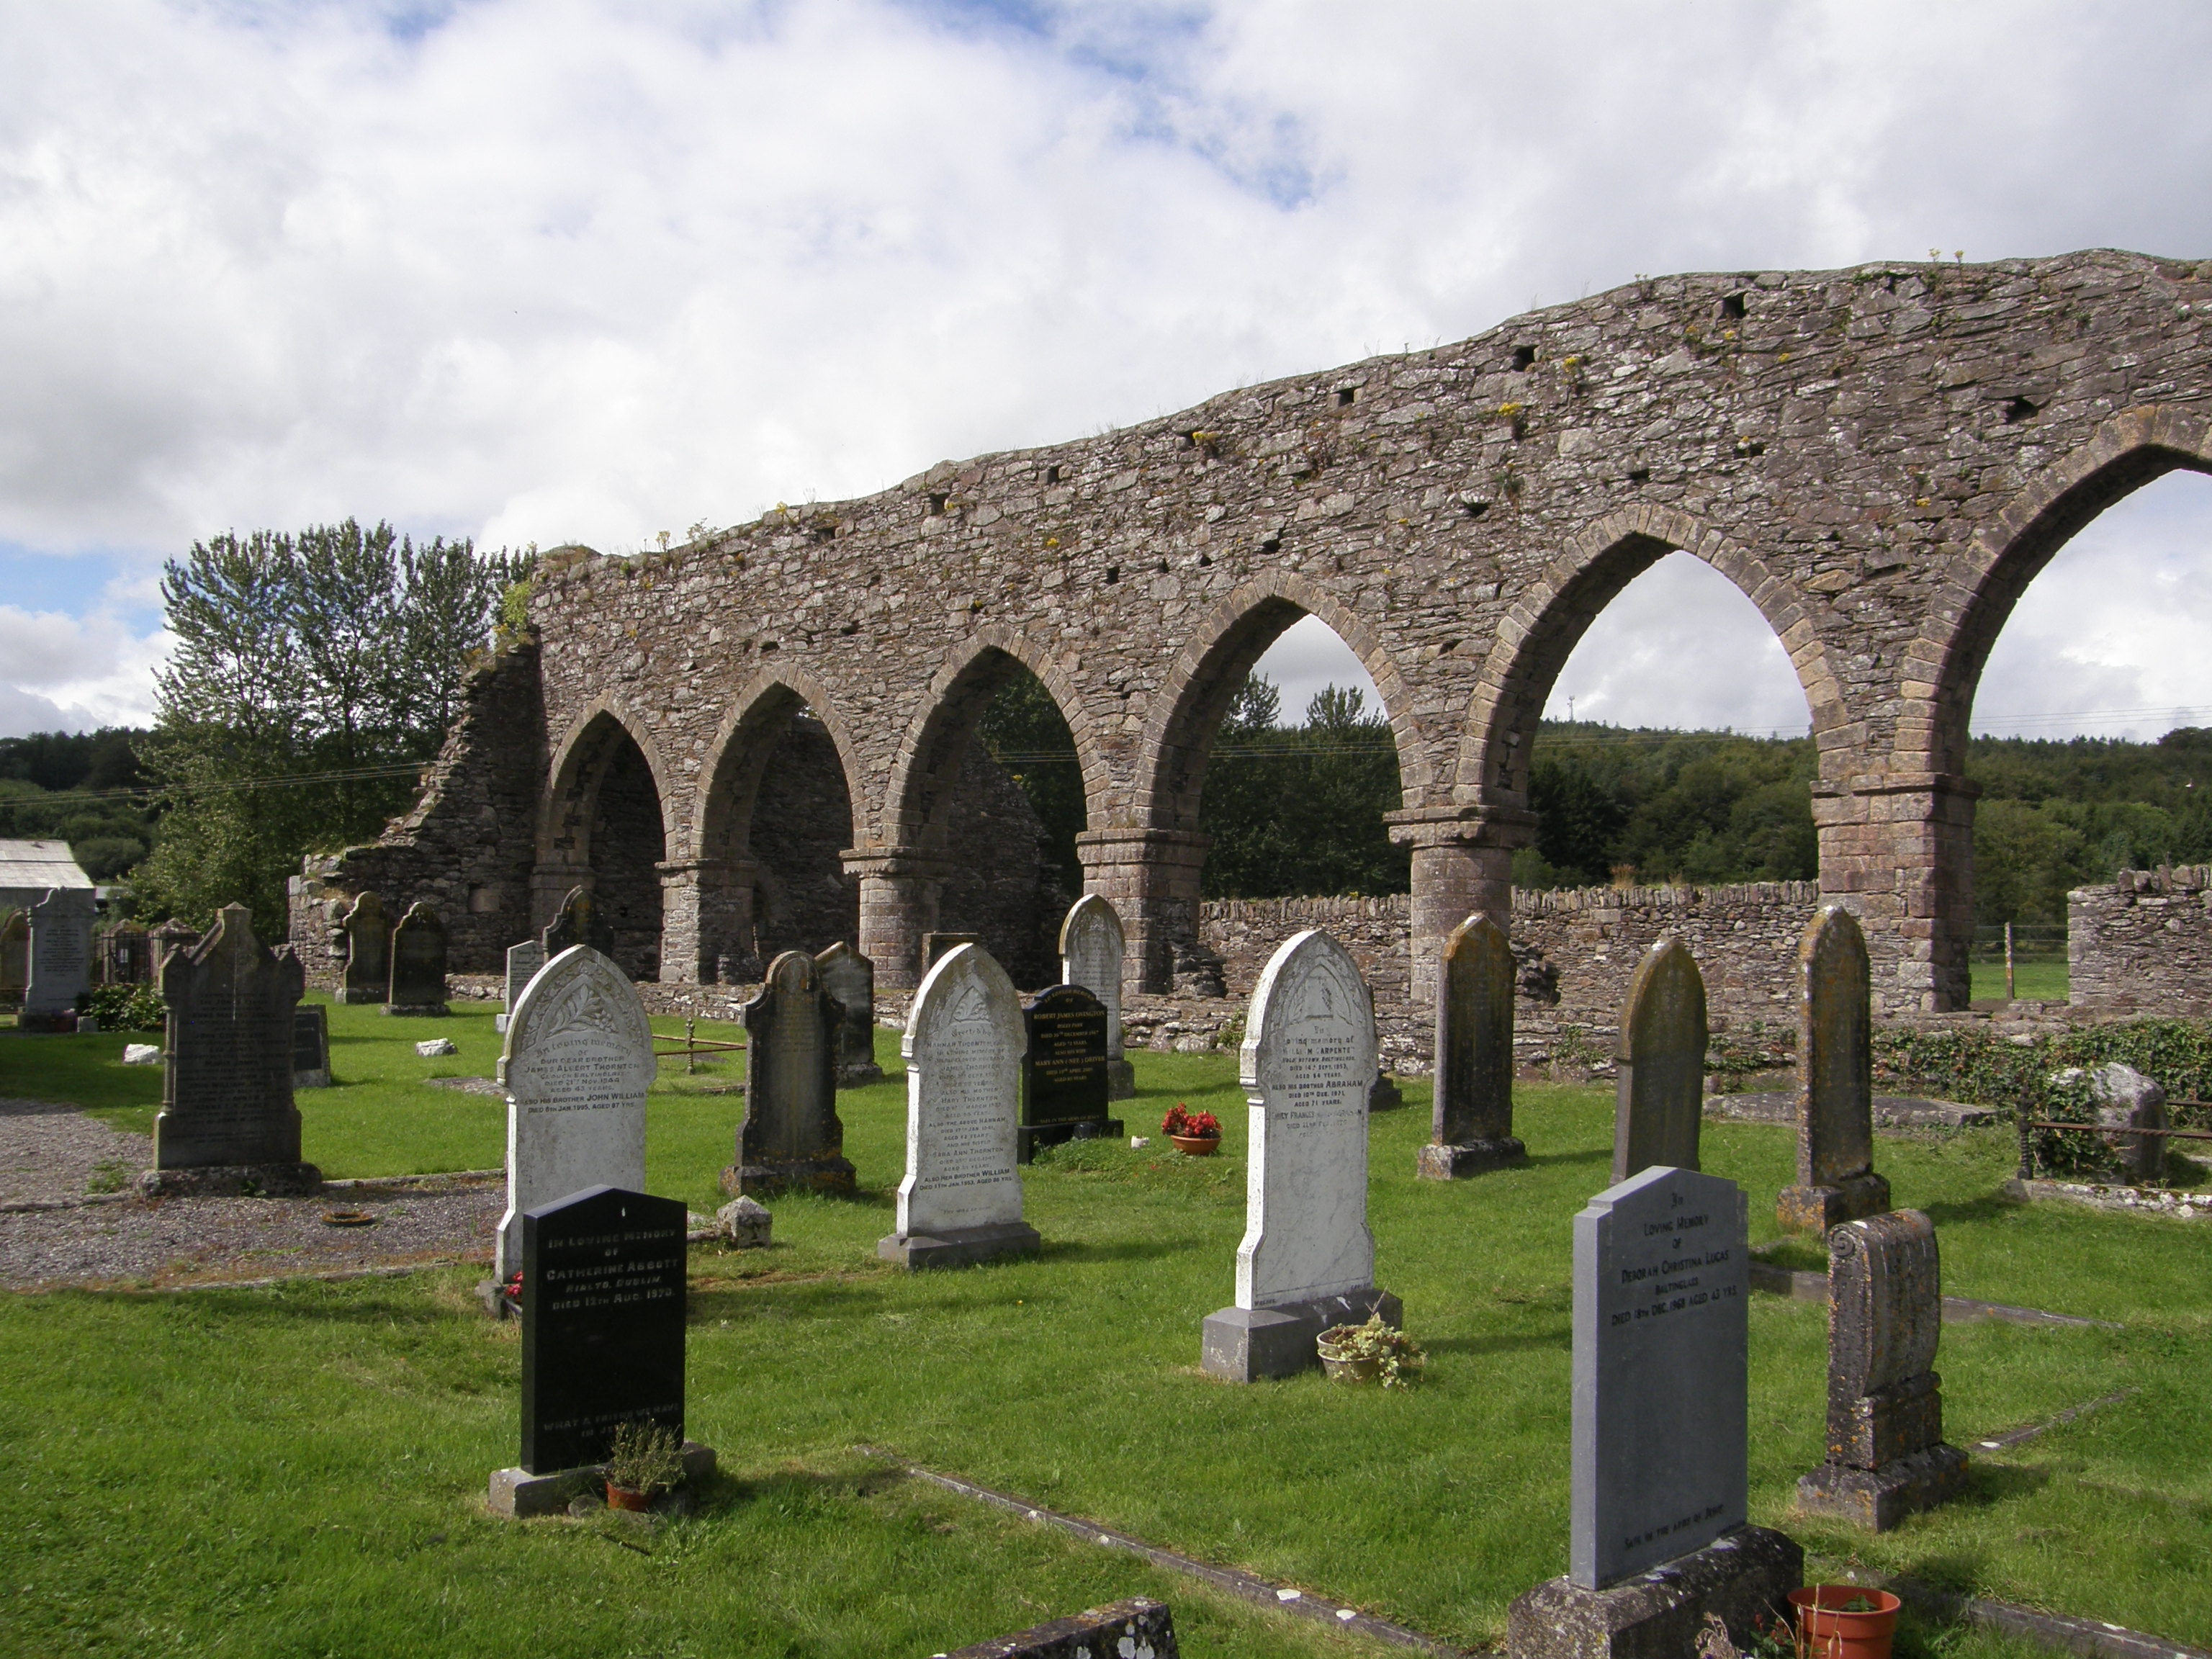 Nave Arches at Baltinglass, Note the Alternating Cylindrical & Square Piers